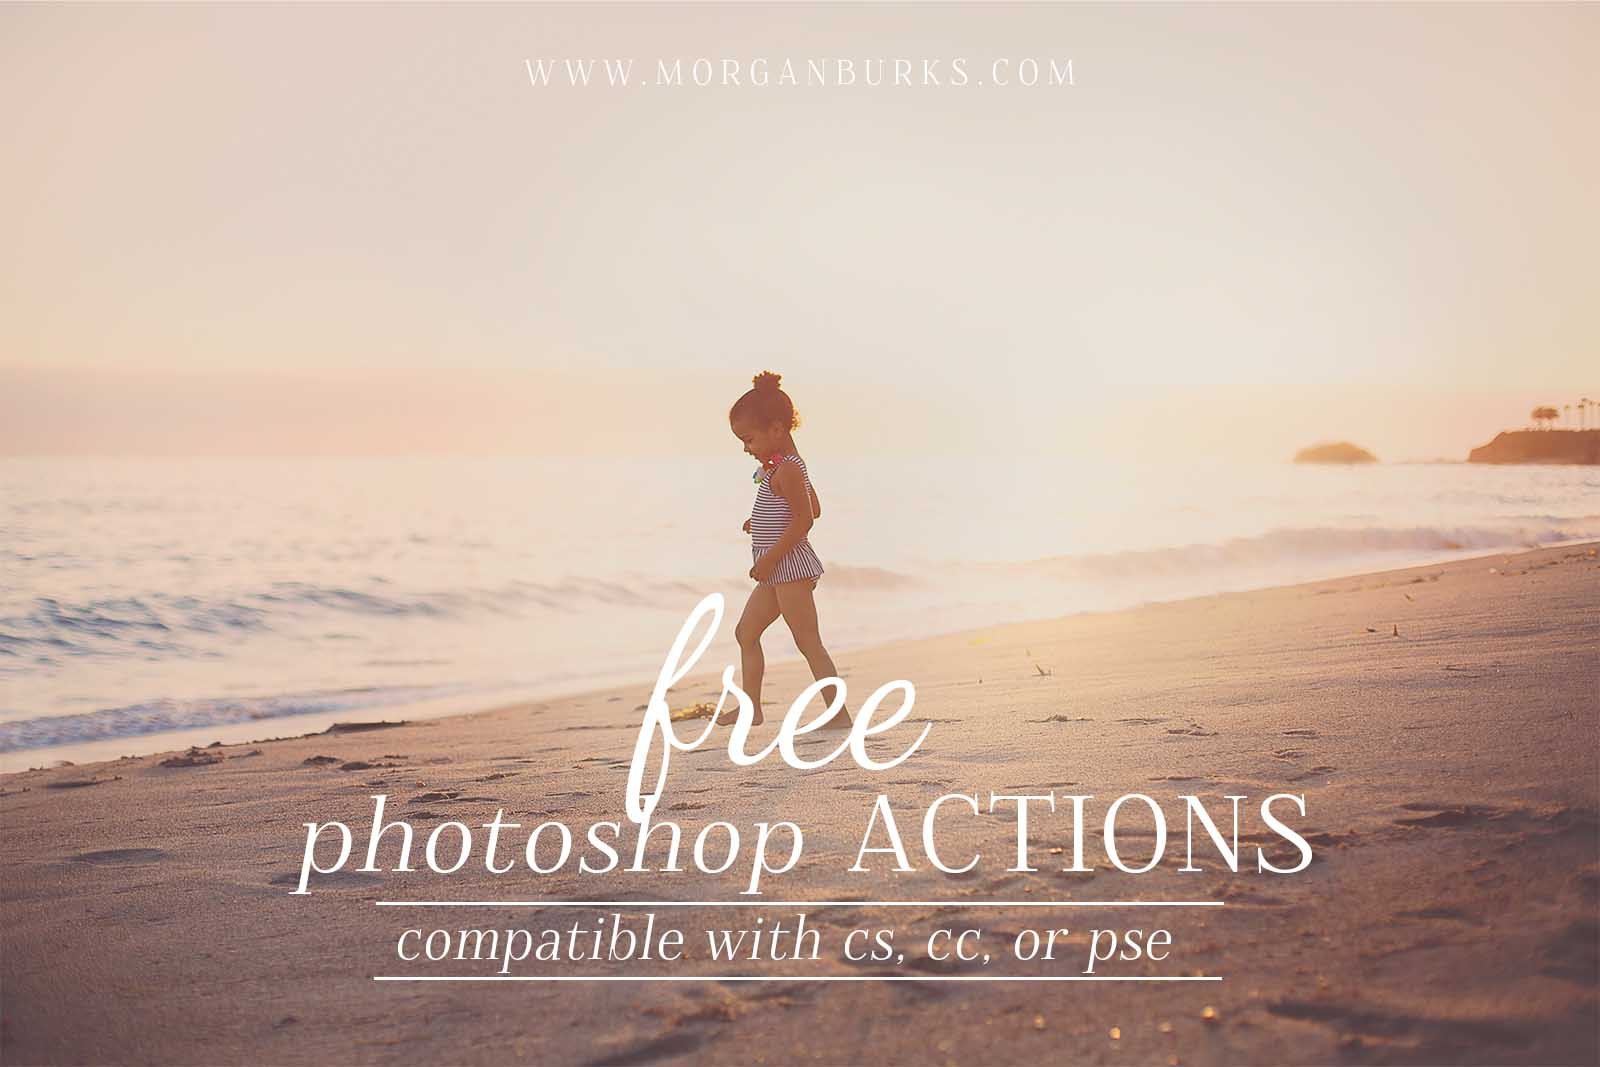 Photoshop Cc Action Free Download